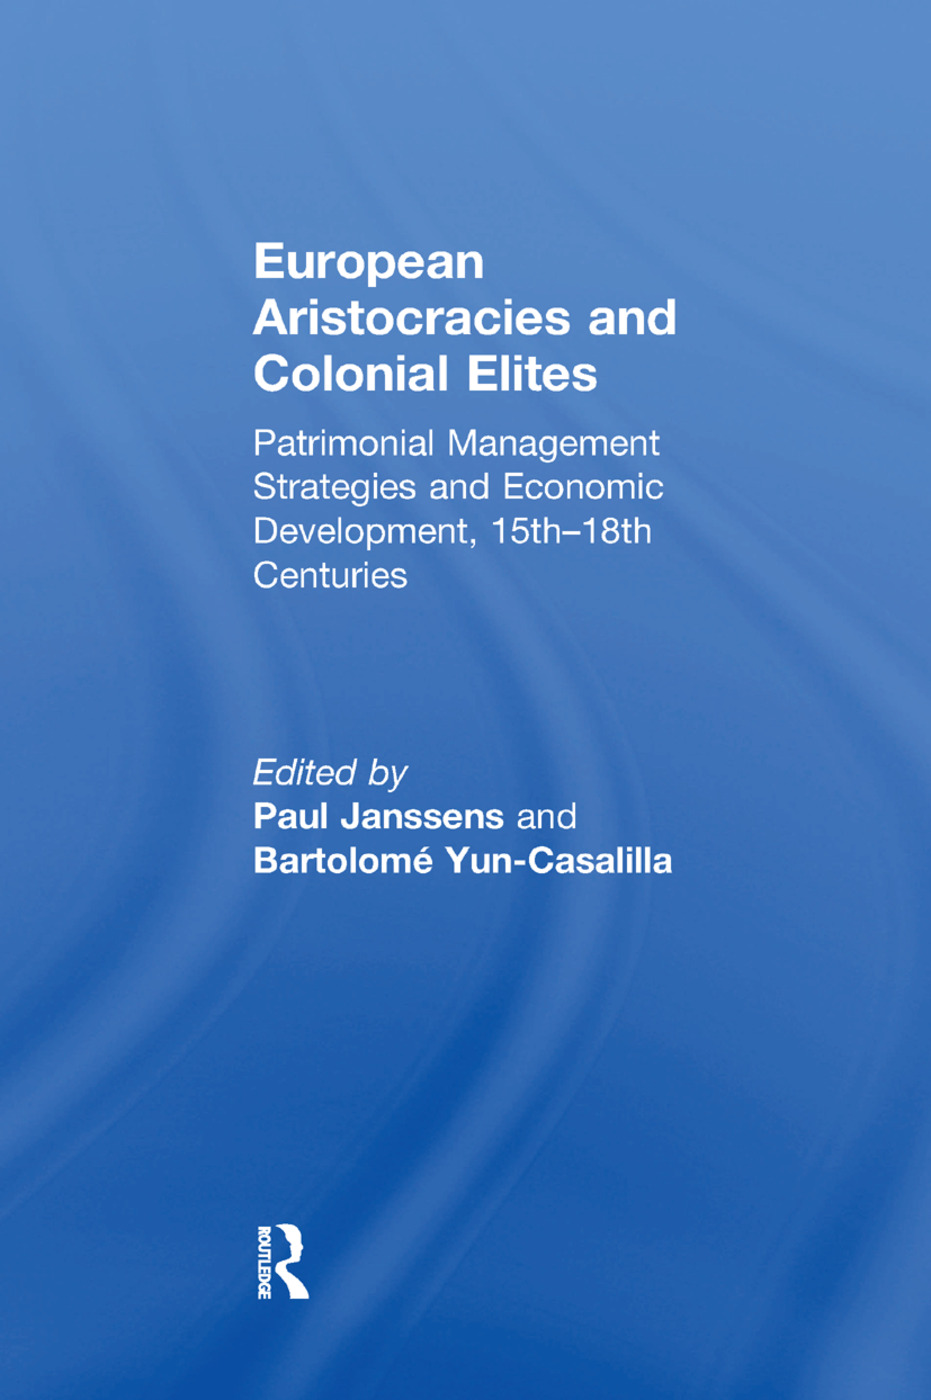 European Aristocracies and Colonial Elites: Patrimonial Management Strategies and Economic Development, 15th–18th Centuries book cover